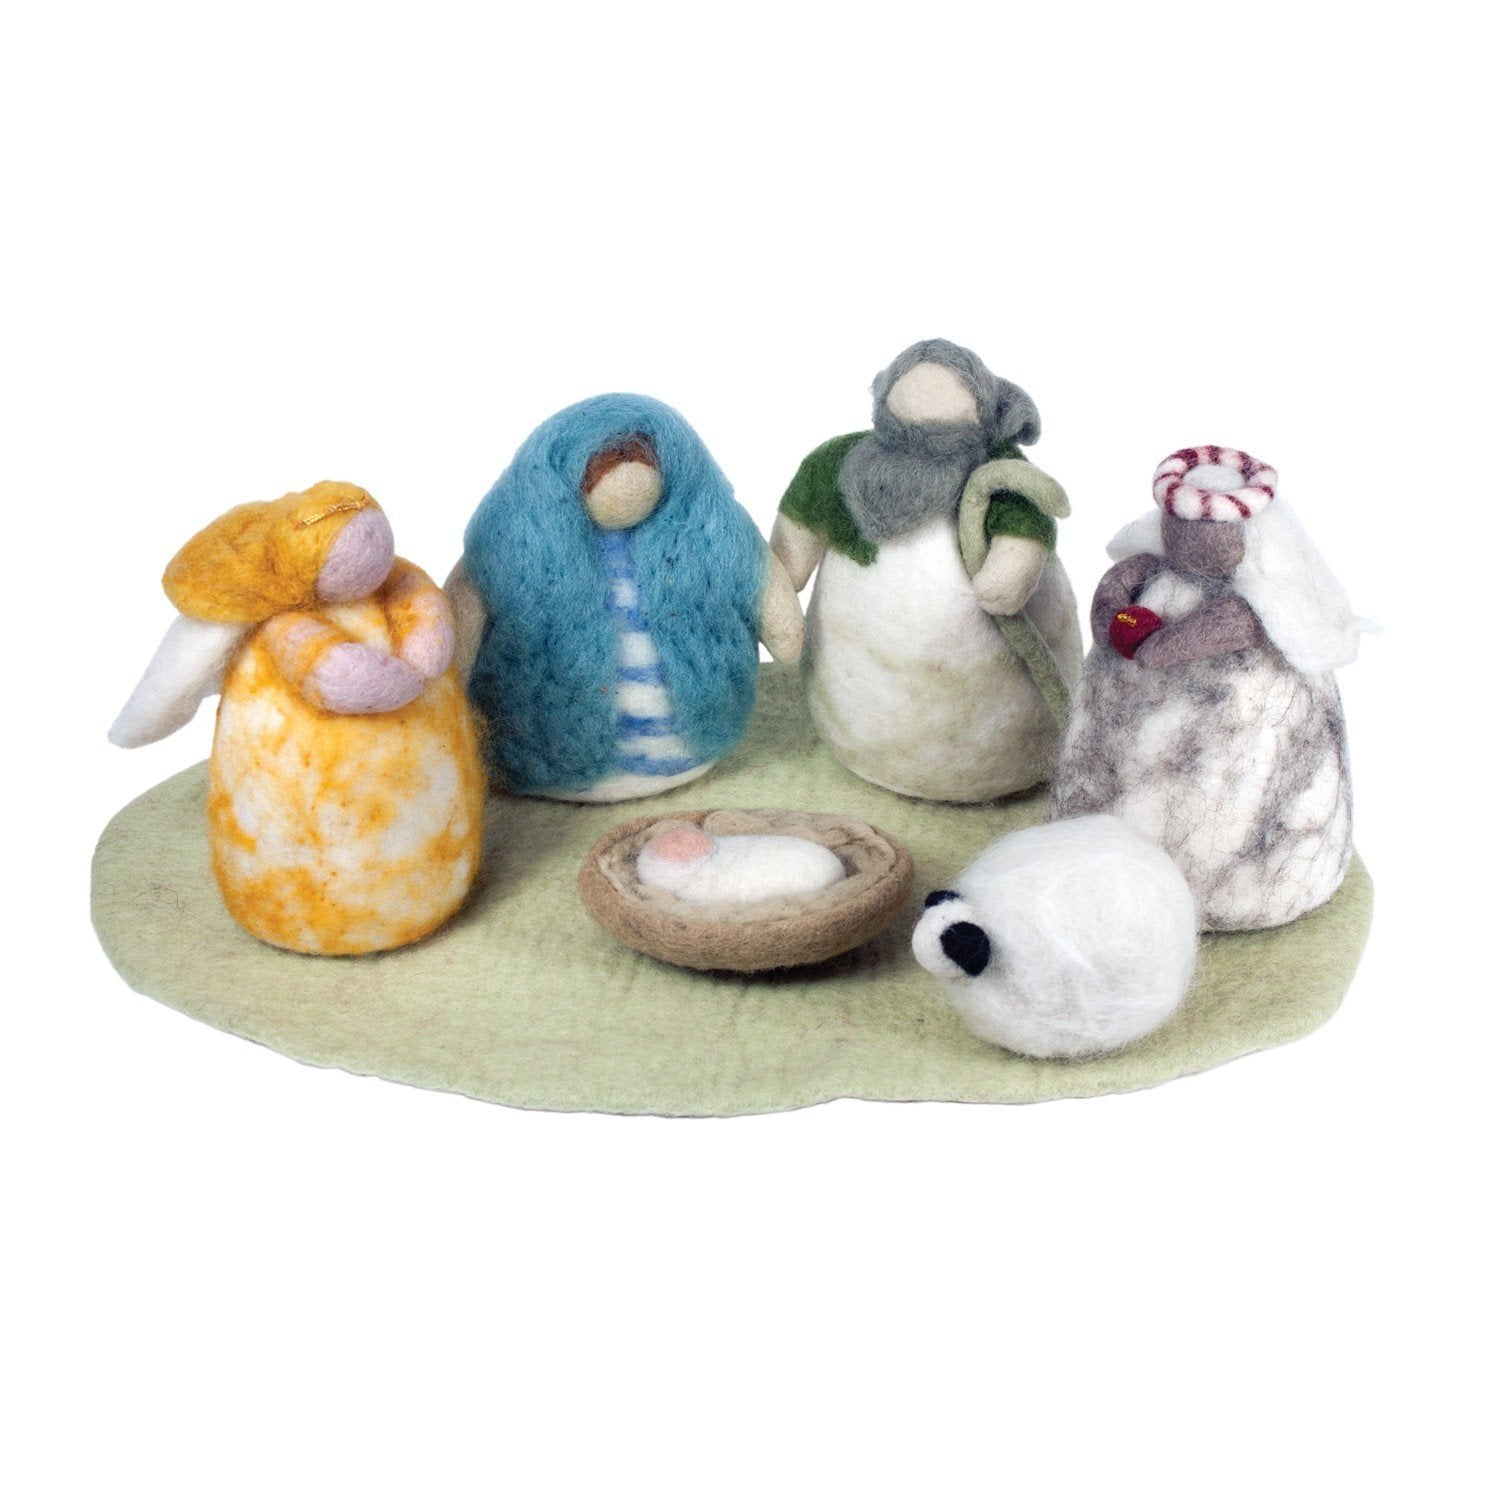 Cozy Felt Nativity Set